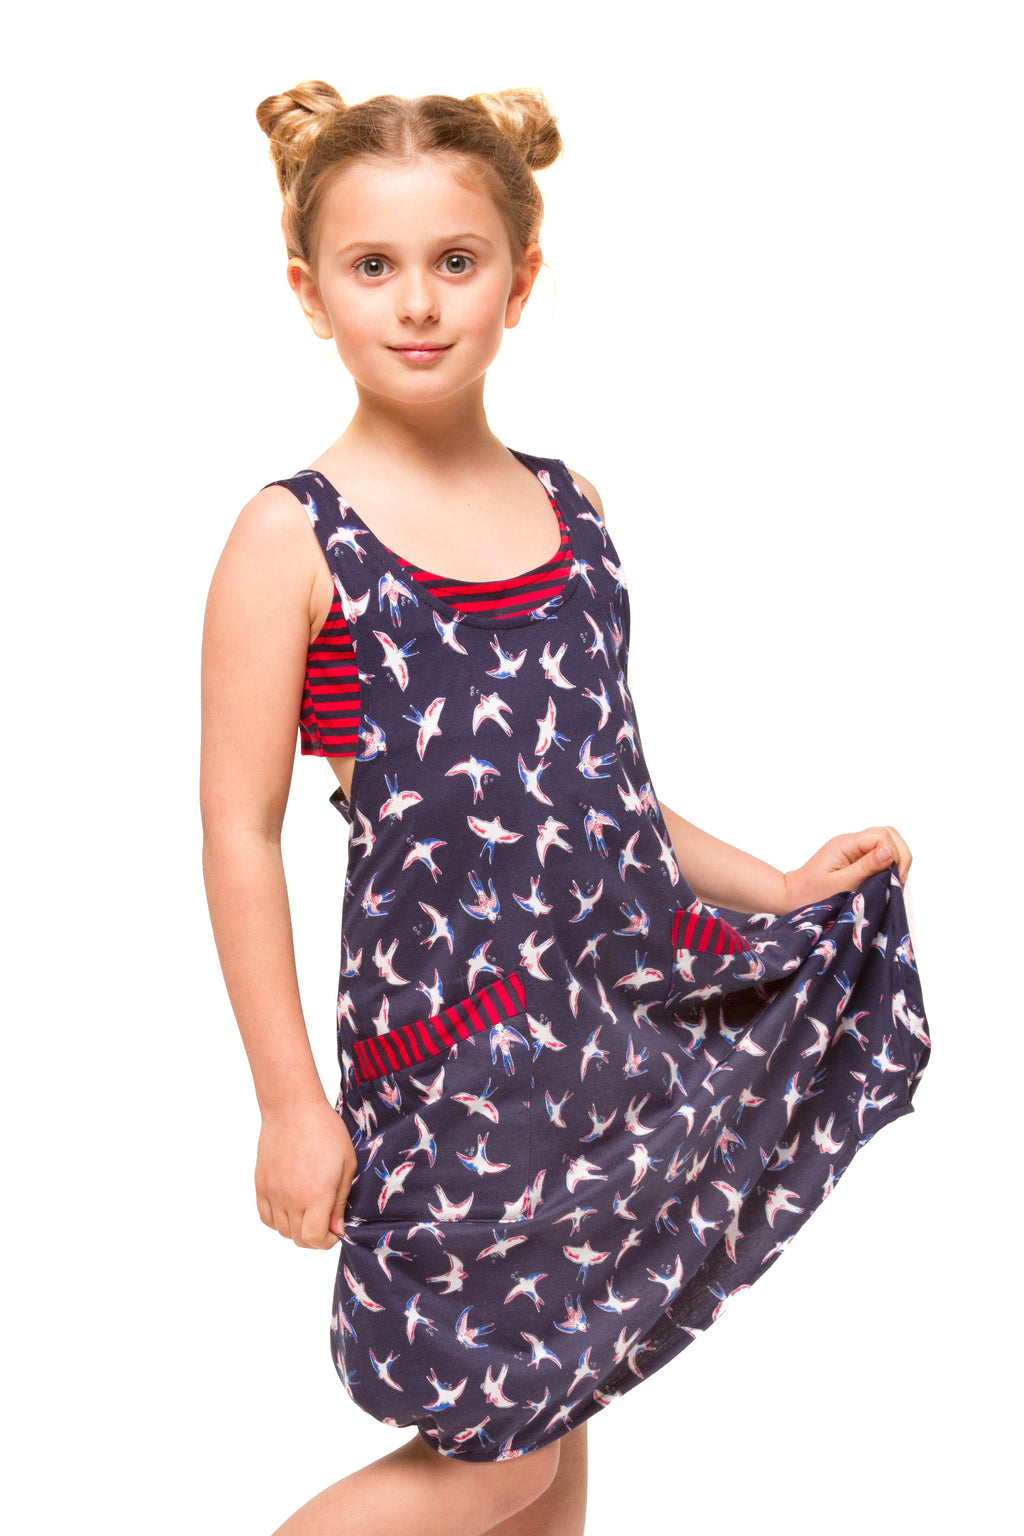 Dixie Girls Dress - Organic Cotton